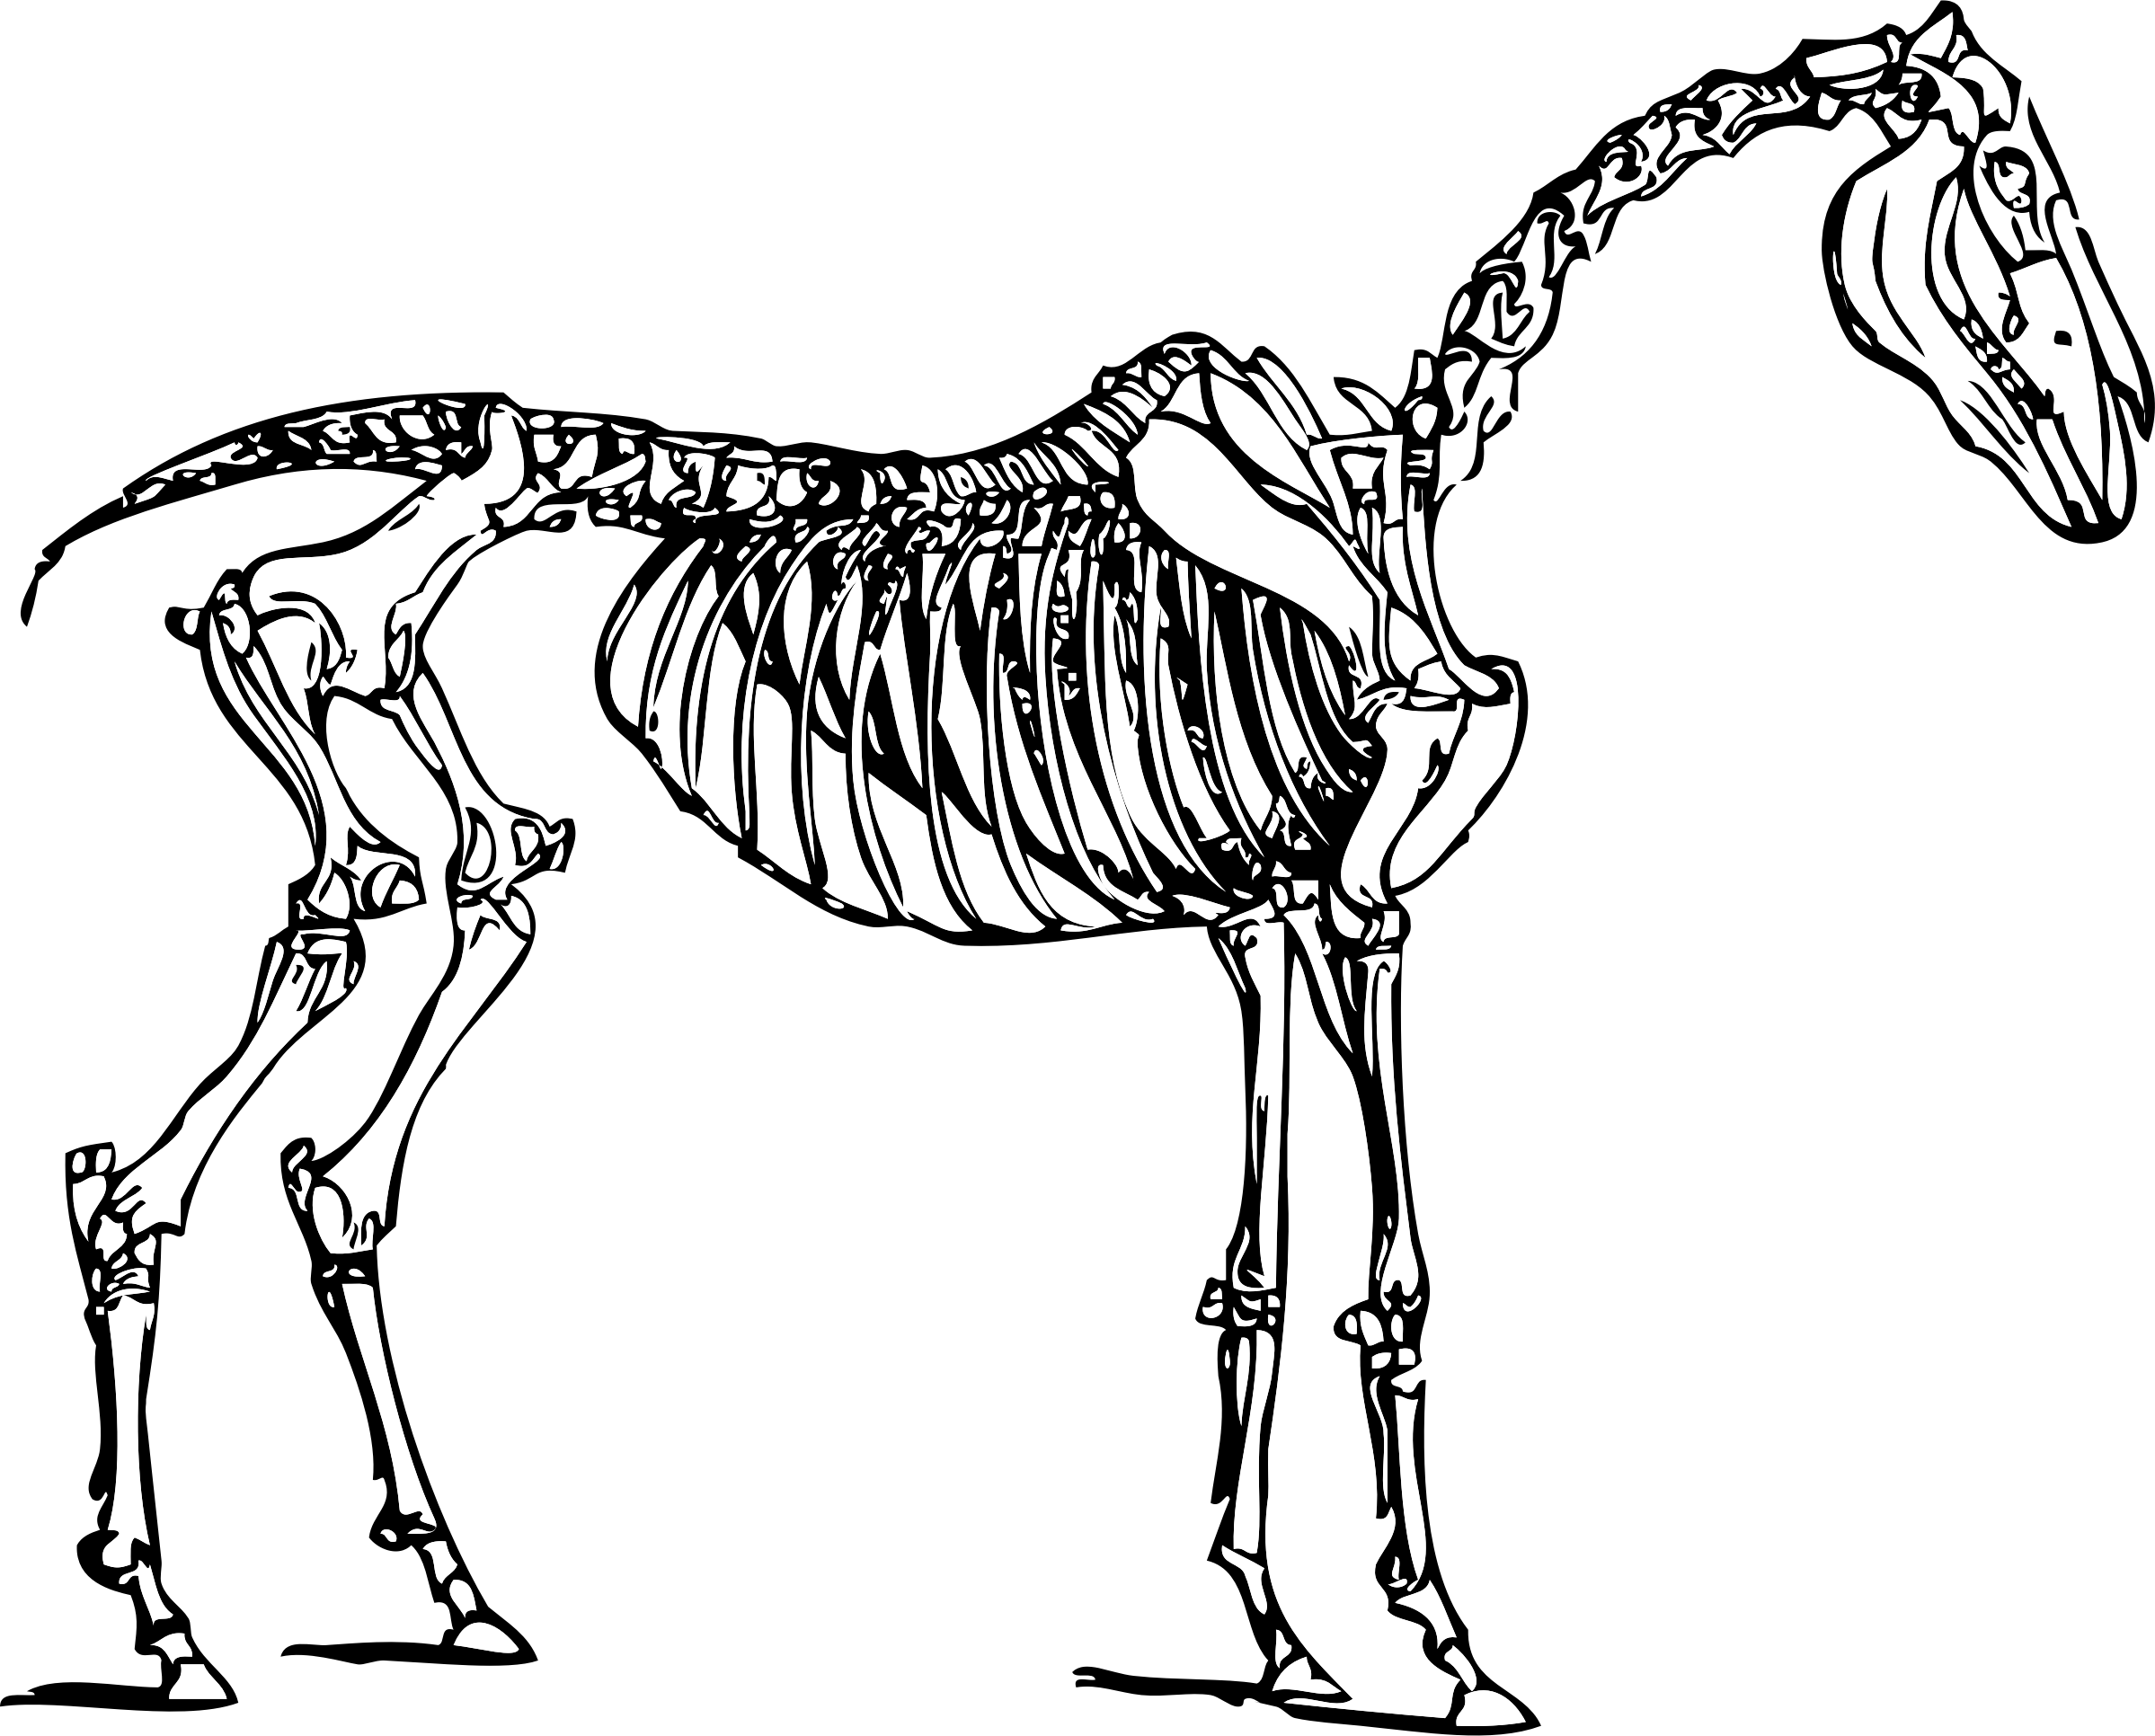 Horse skeleton big image. Bone clipart animal bone